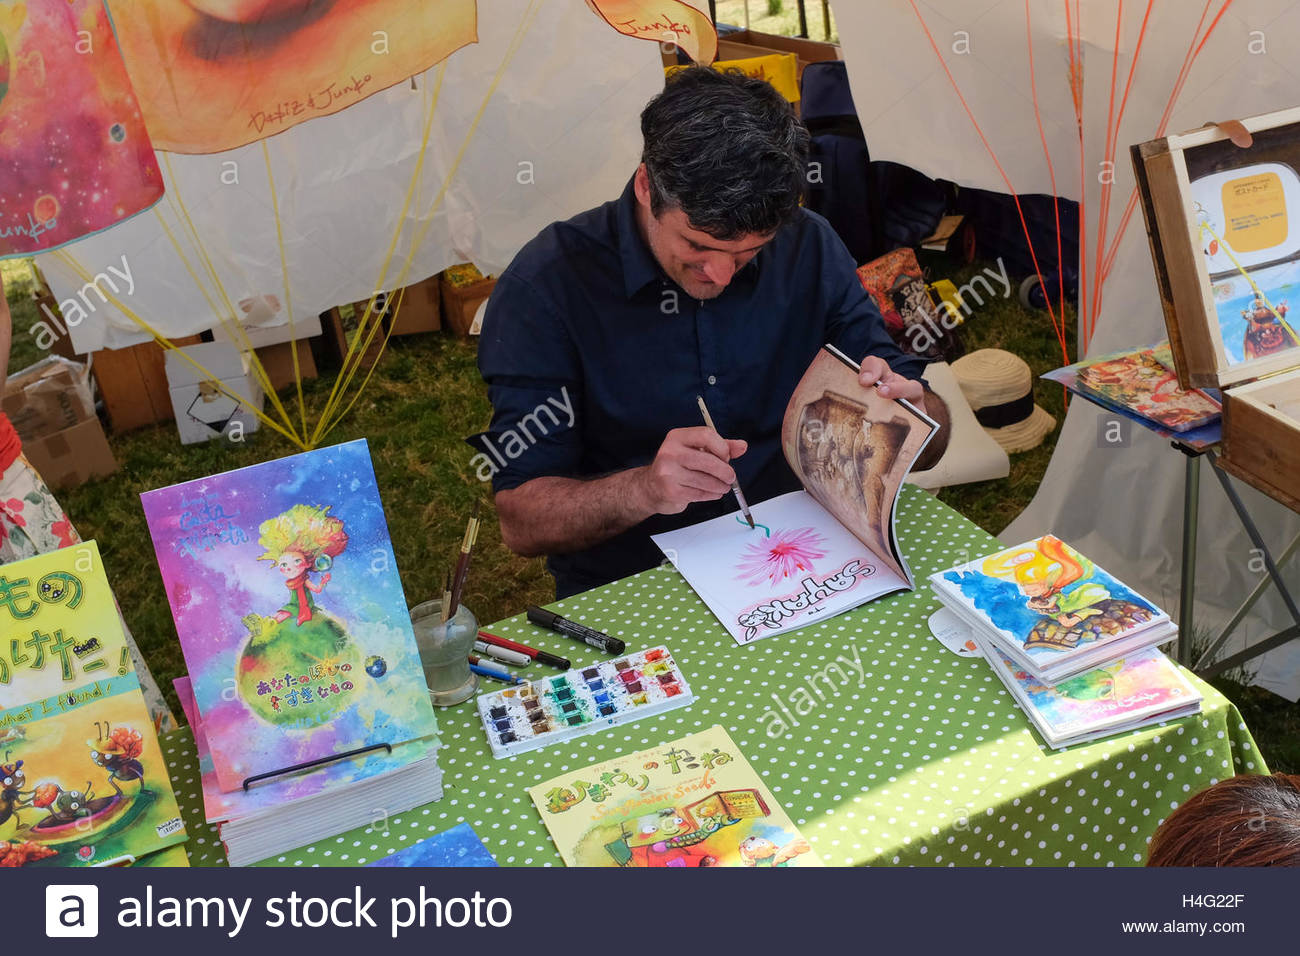 Artist and picture-book creator David Molinero of Dabiz & Junko Books. - Stock Image